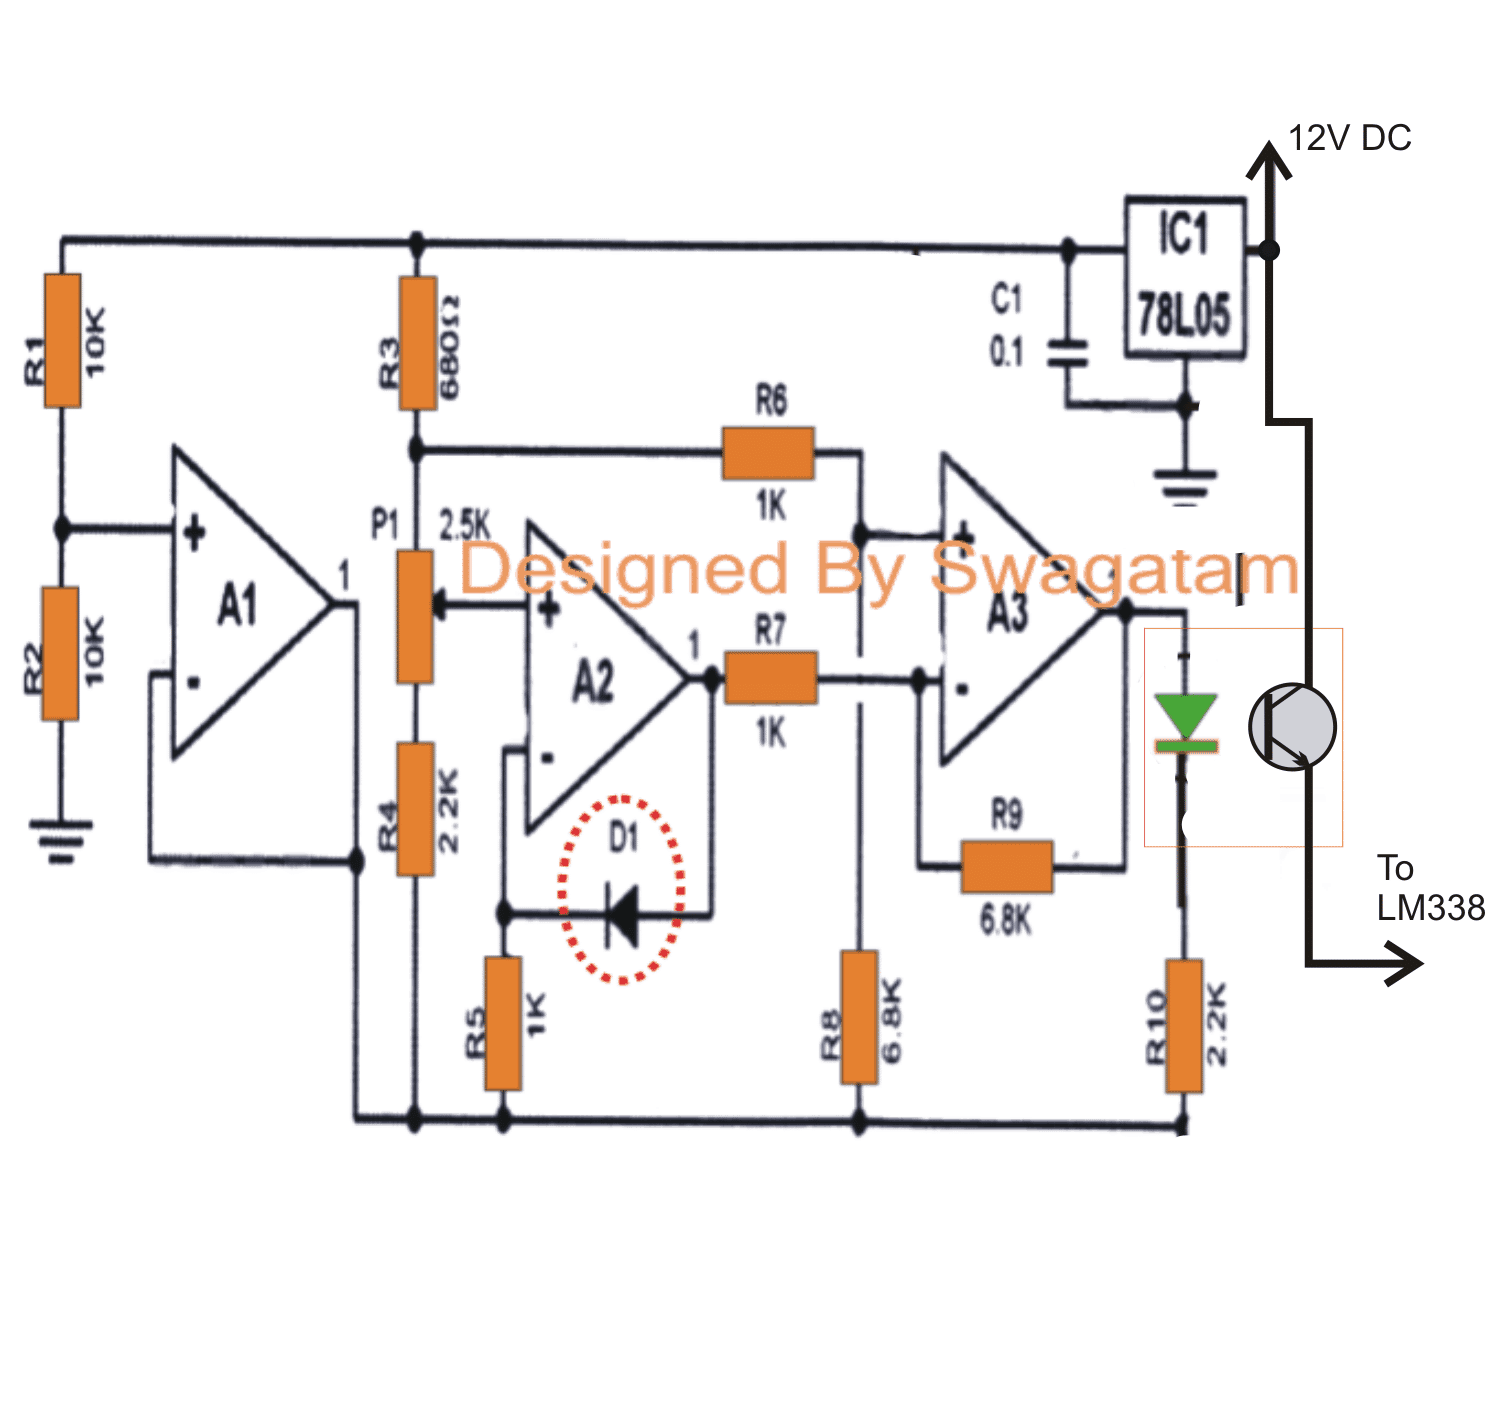 How To Charge Many Li Ion Batteries Together 12 Volt Battery Charger Schematic Http Homemadecircuitsandschematics Circuit For Controlling Charging Heat